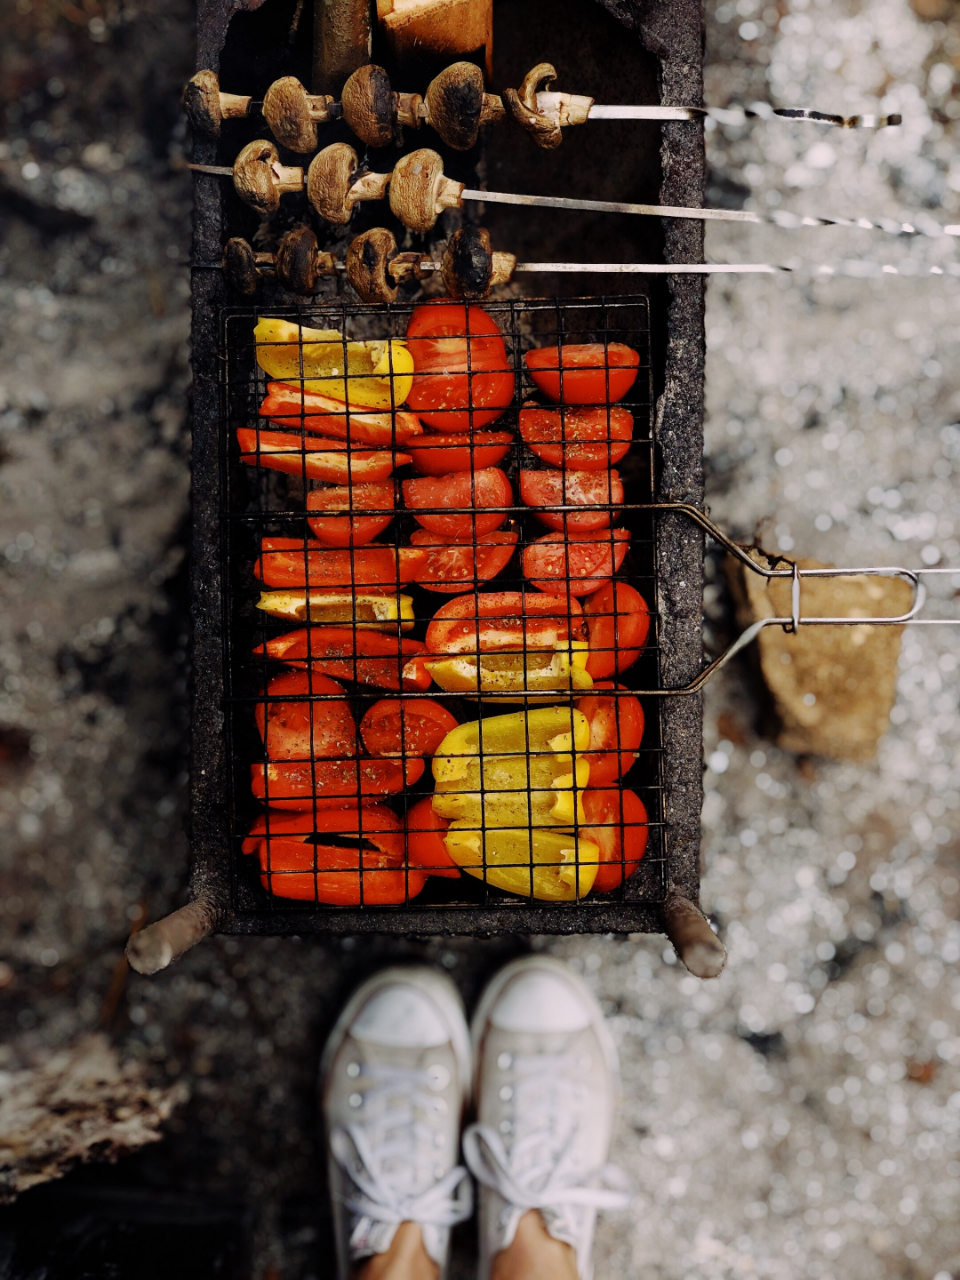 barbecue peppers chicken fire roast bbq cook outdoors grill shoes sneakers pork meat food